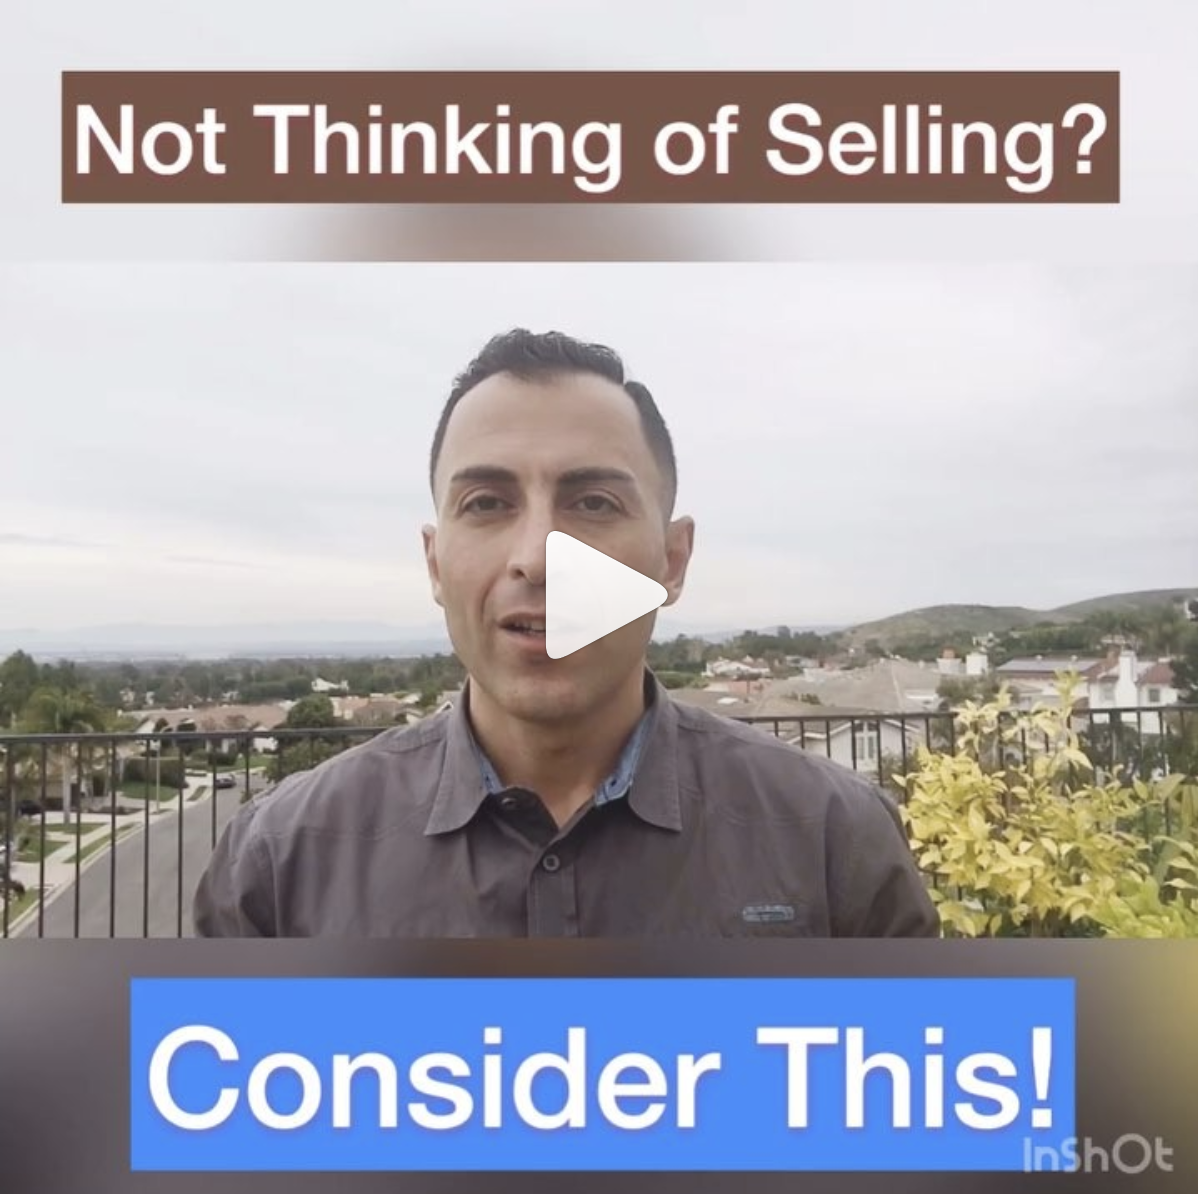 Not Thinking of Selling?